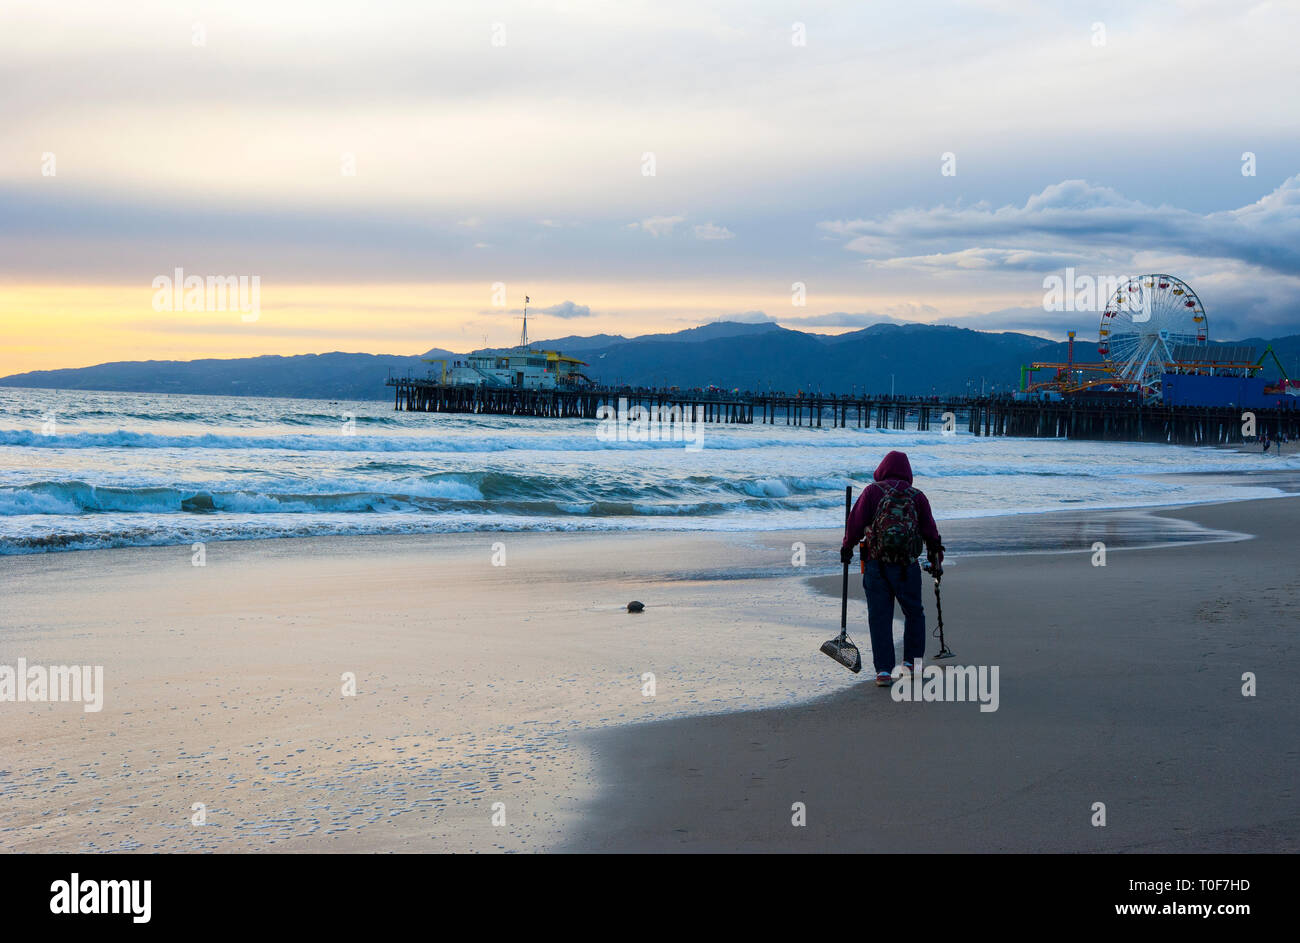 Prospector with metal detector looking for buried treasure at Santa Monica beach - Stock Image